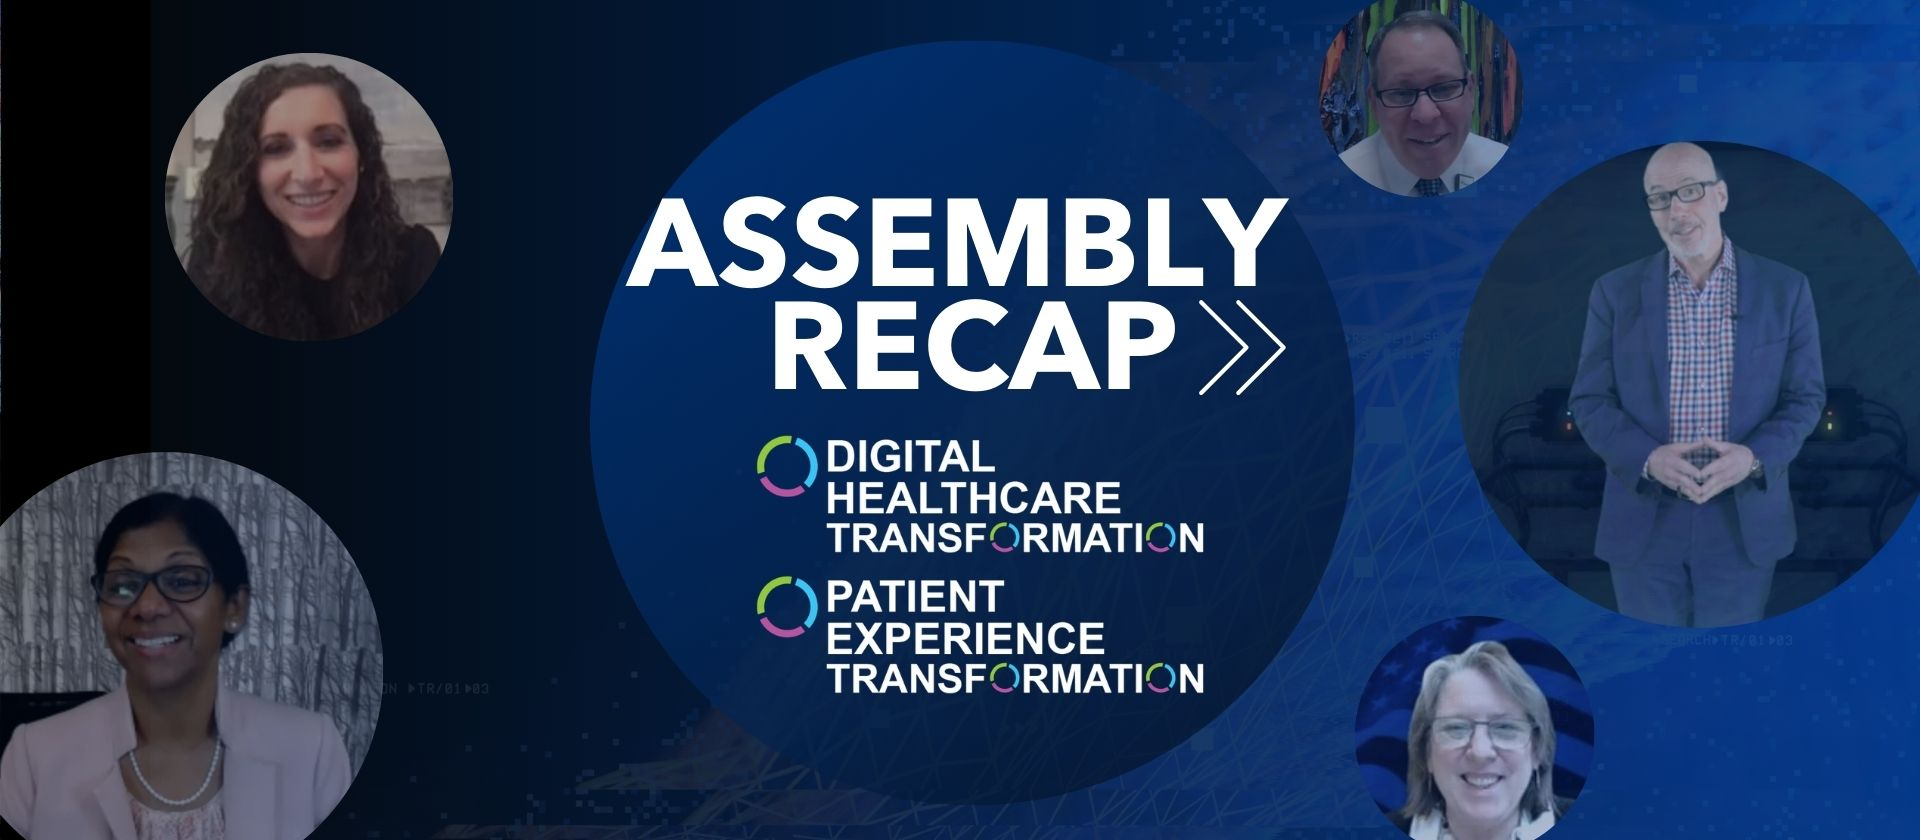 Recapping the Digital Healthcare and Patient Experience Virtual Assembly